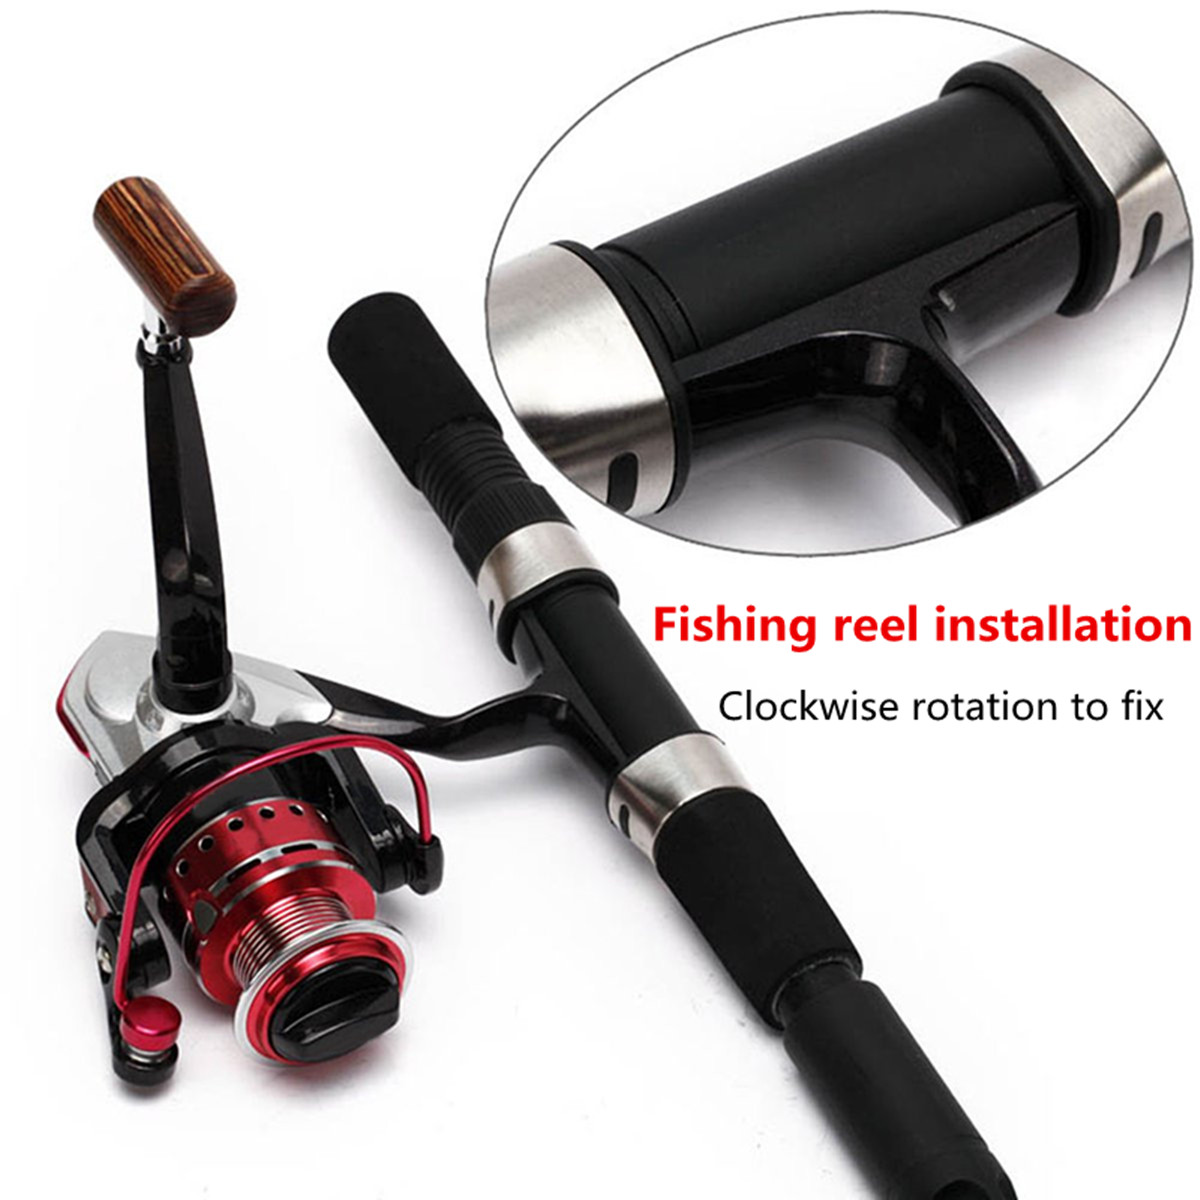 ZANLURE Portable Spooling Line Spinning Fishing Reel Line Spooler Line Winder Spool Holder Winder Line Winding System